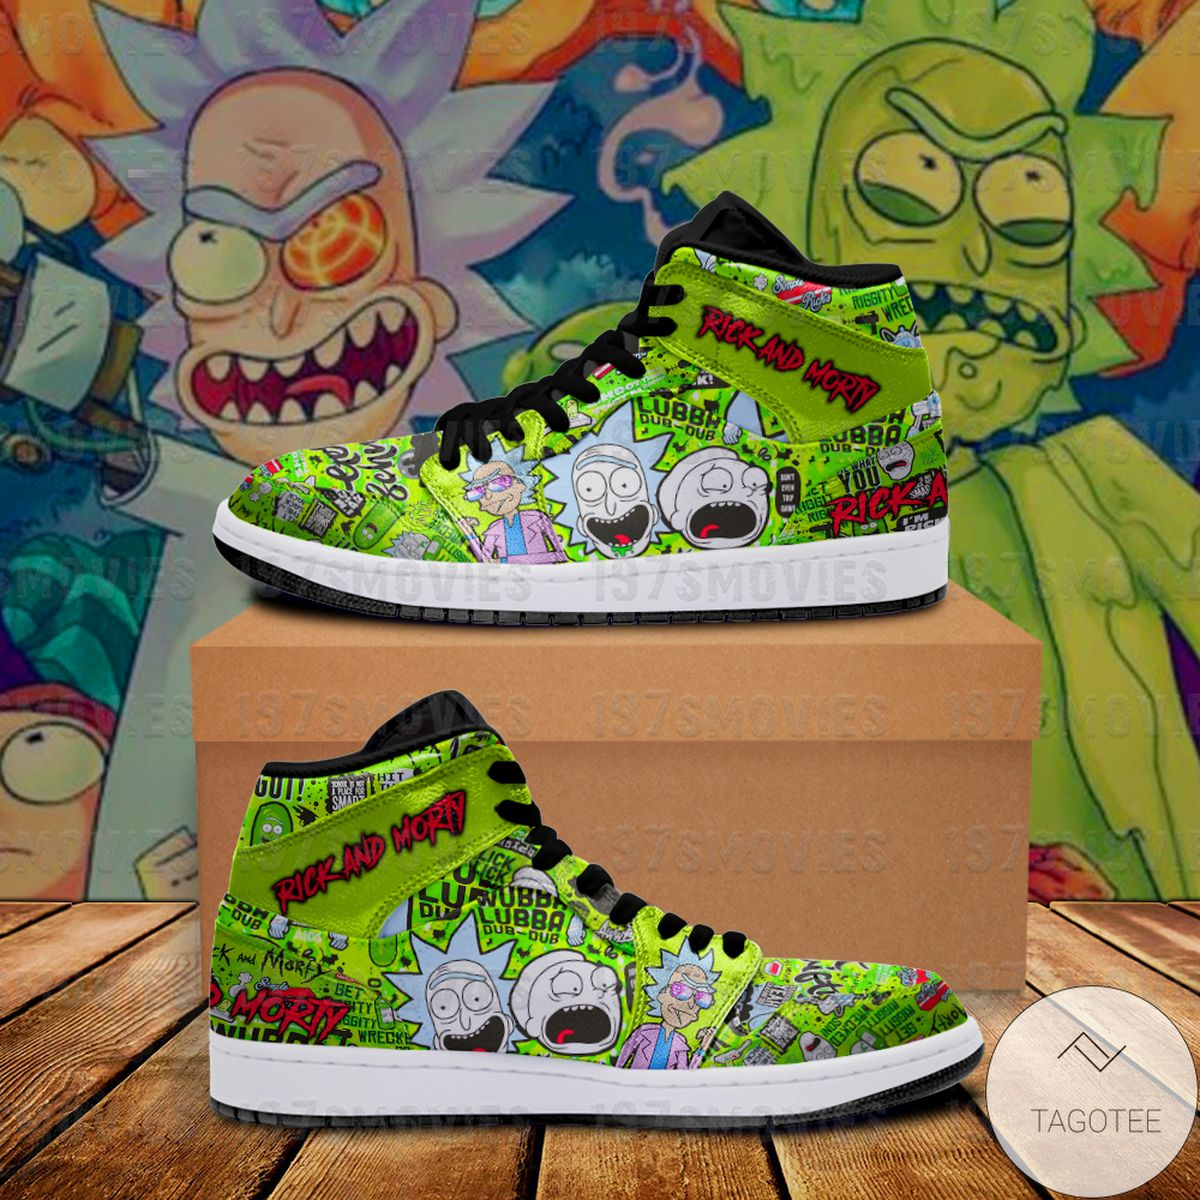 Official Rick and Morty Sneaker Air Jordan High Top Shoes